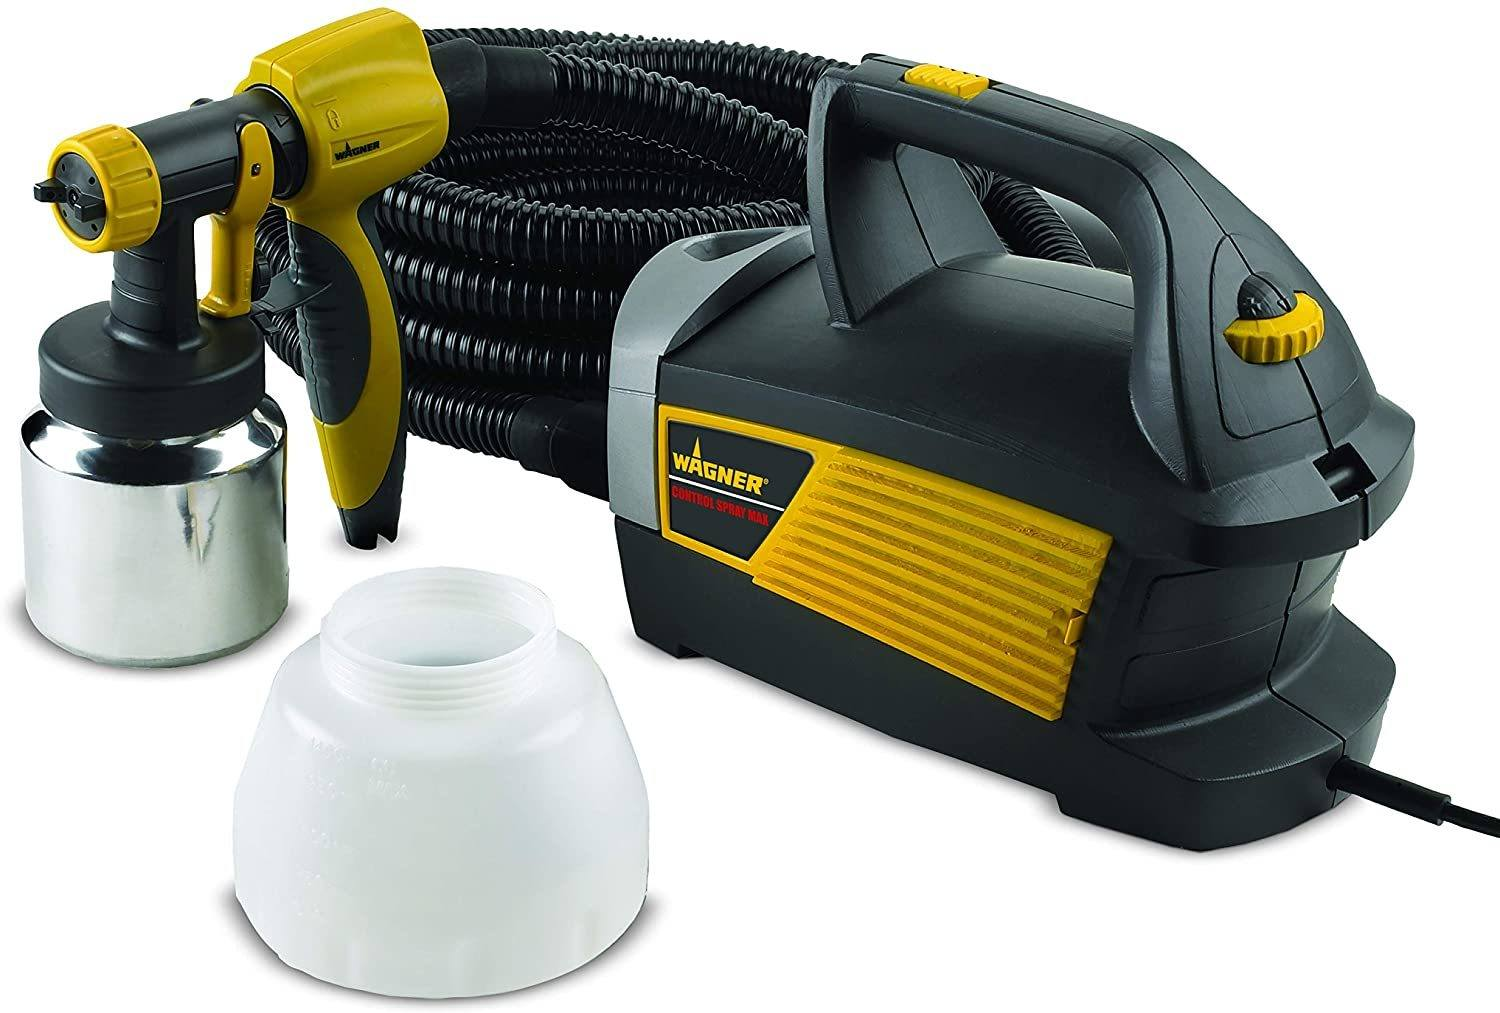 Wagner Spraytech 0518080 Control Spray Max HVLP Paint or Stain Sprayer